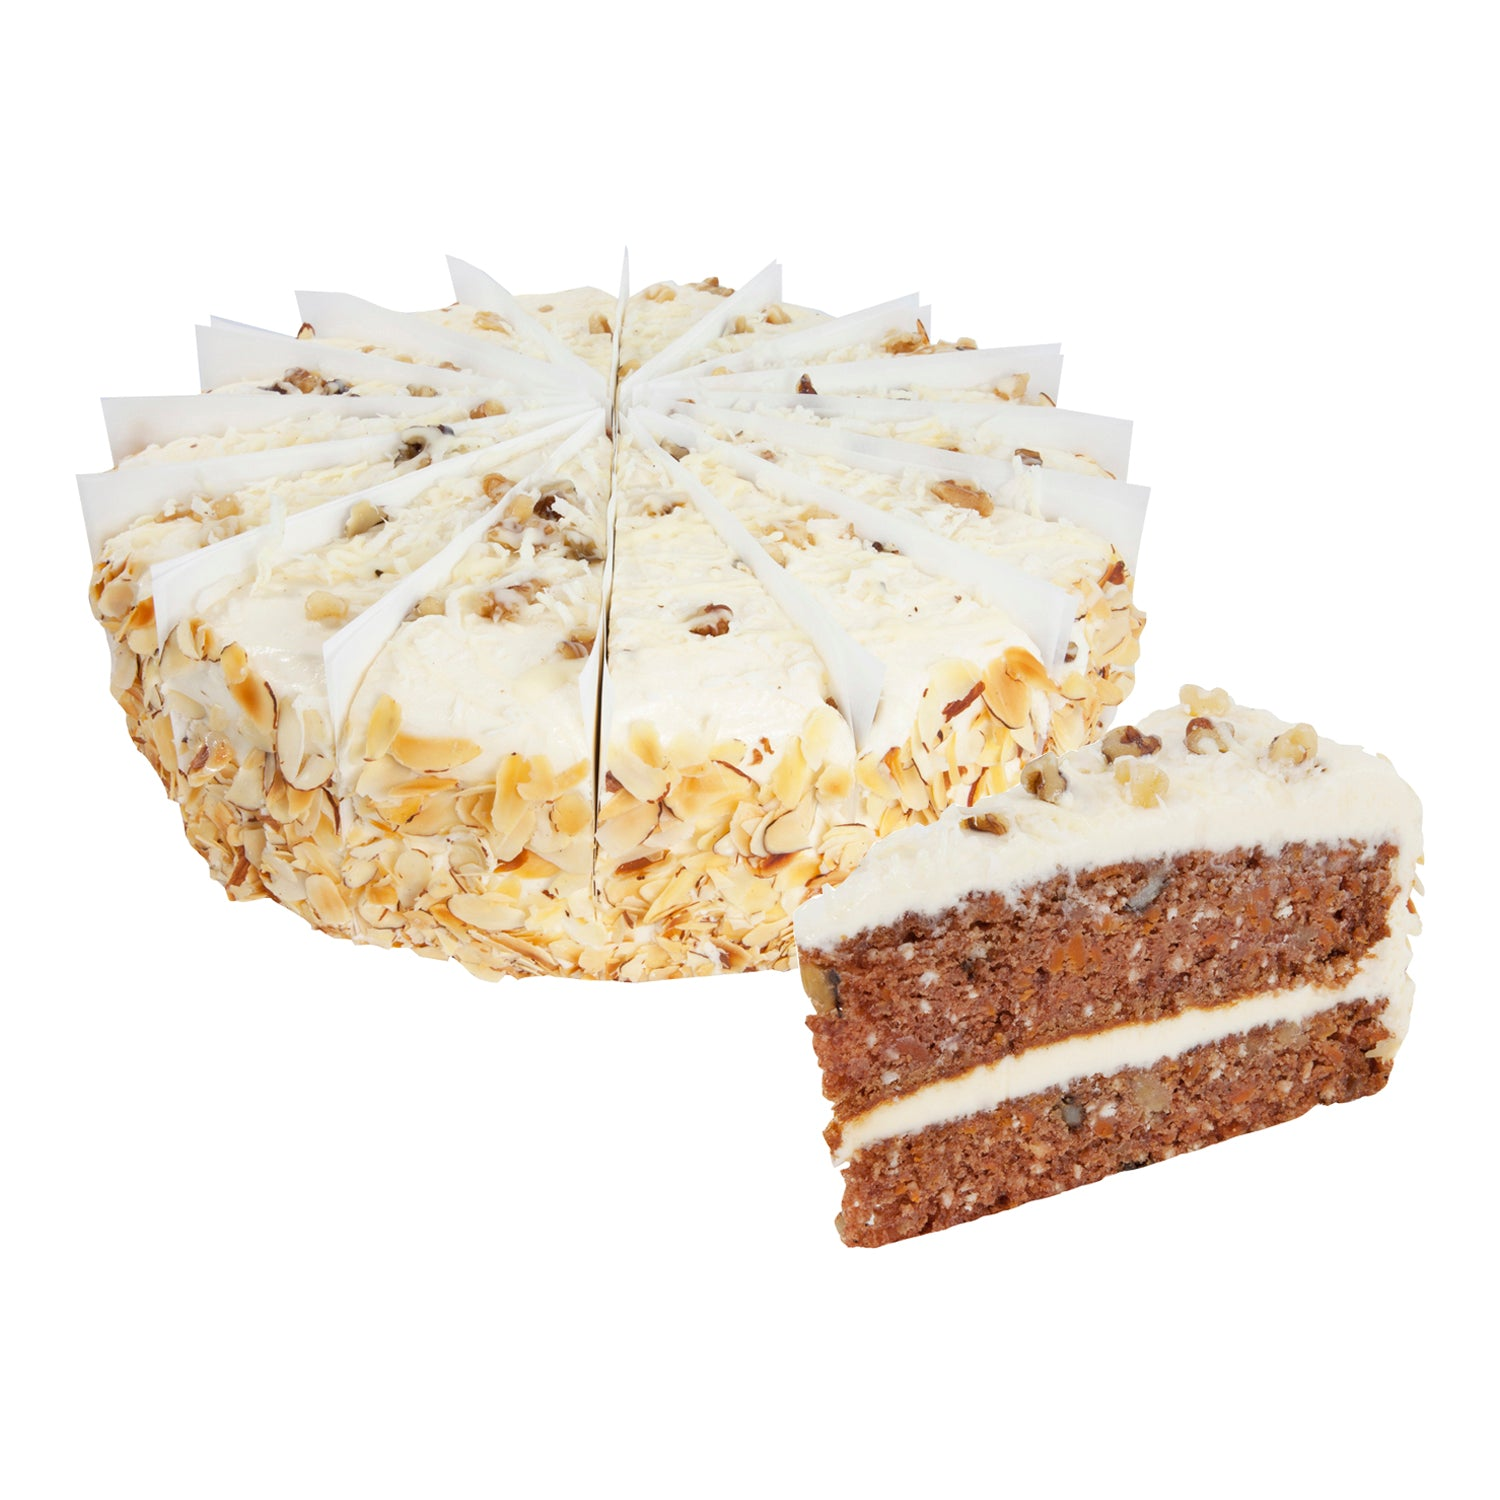 "WOW Factor Frozen Colossal Carrot Cake 10"""" - 2 Pack [$42.75/each]"